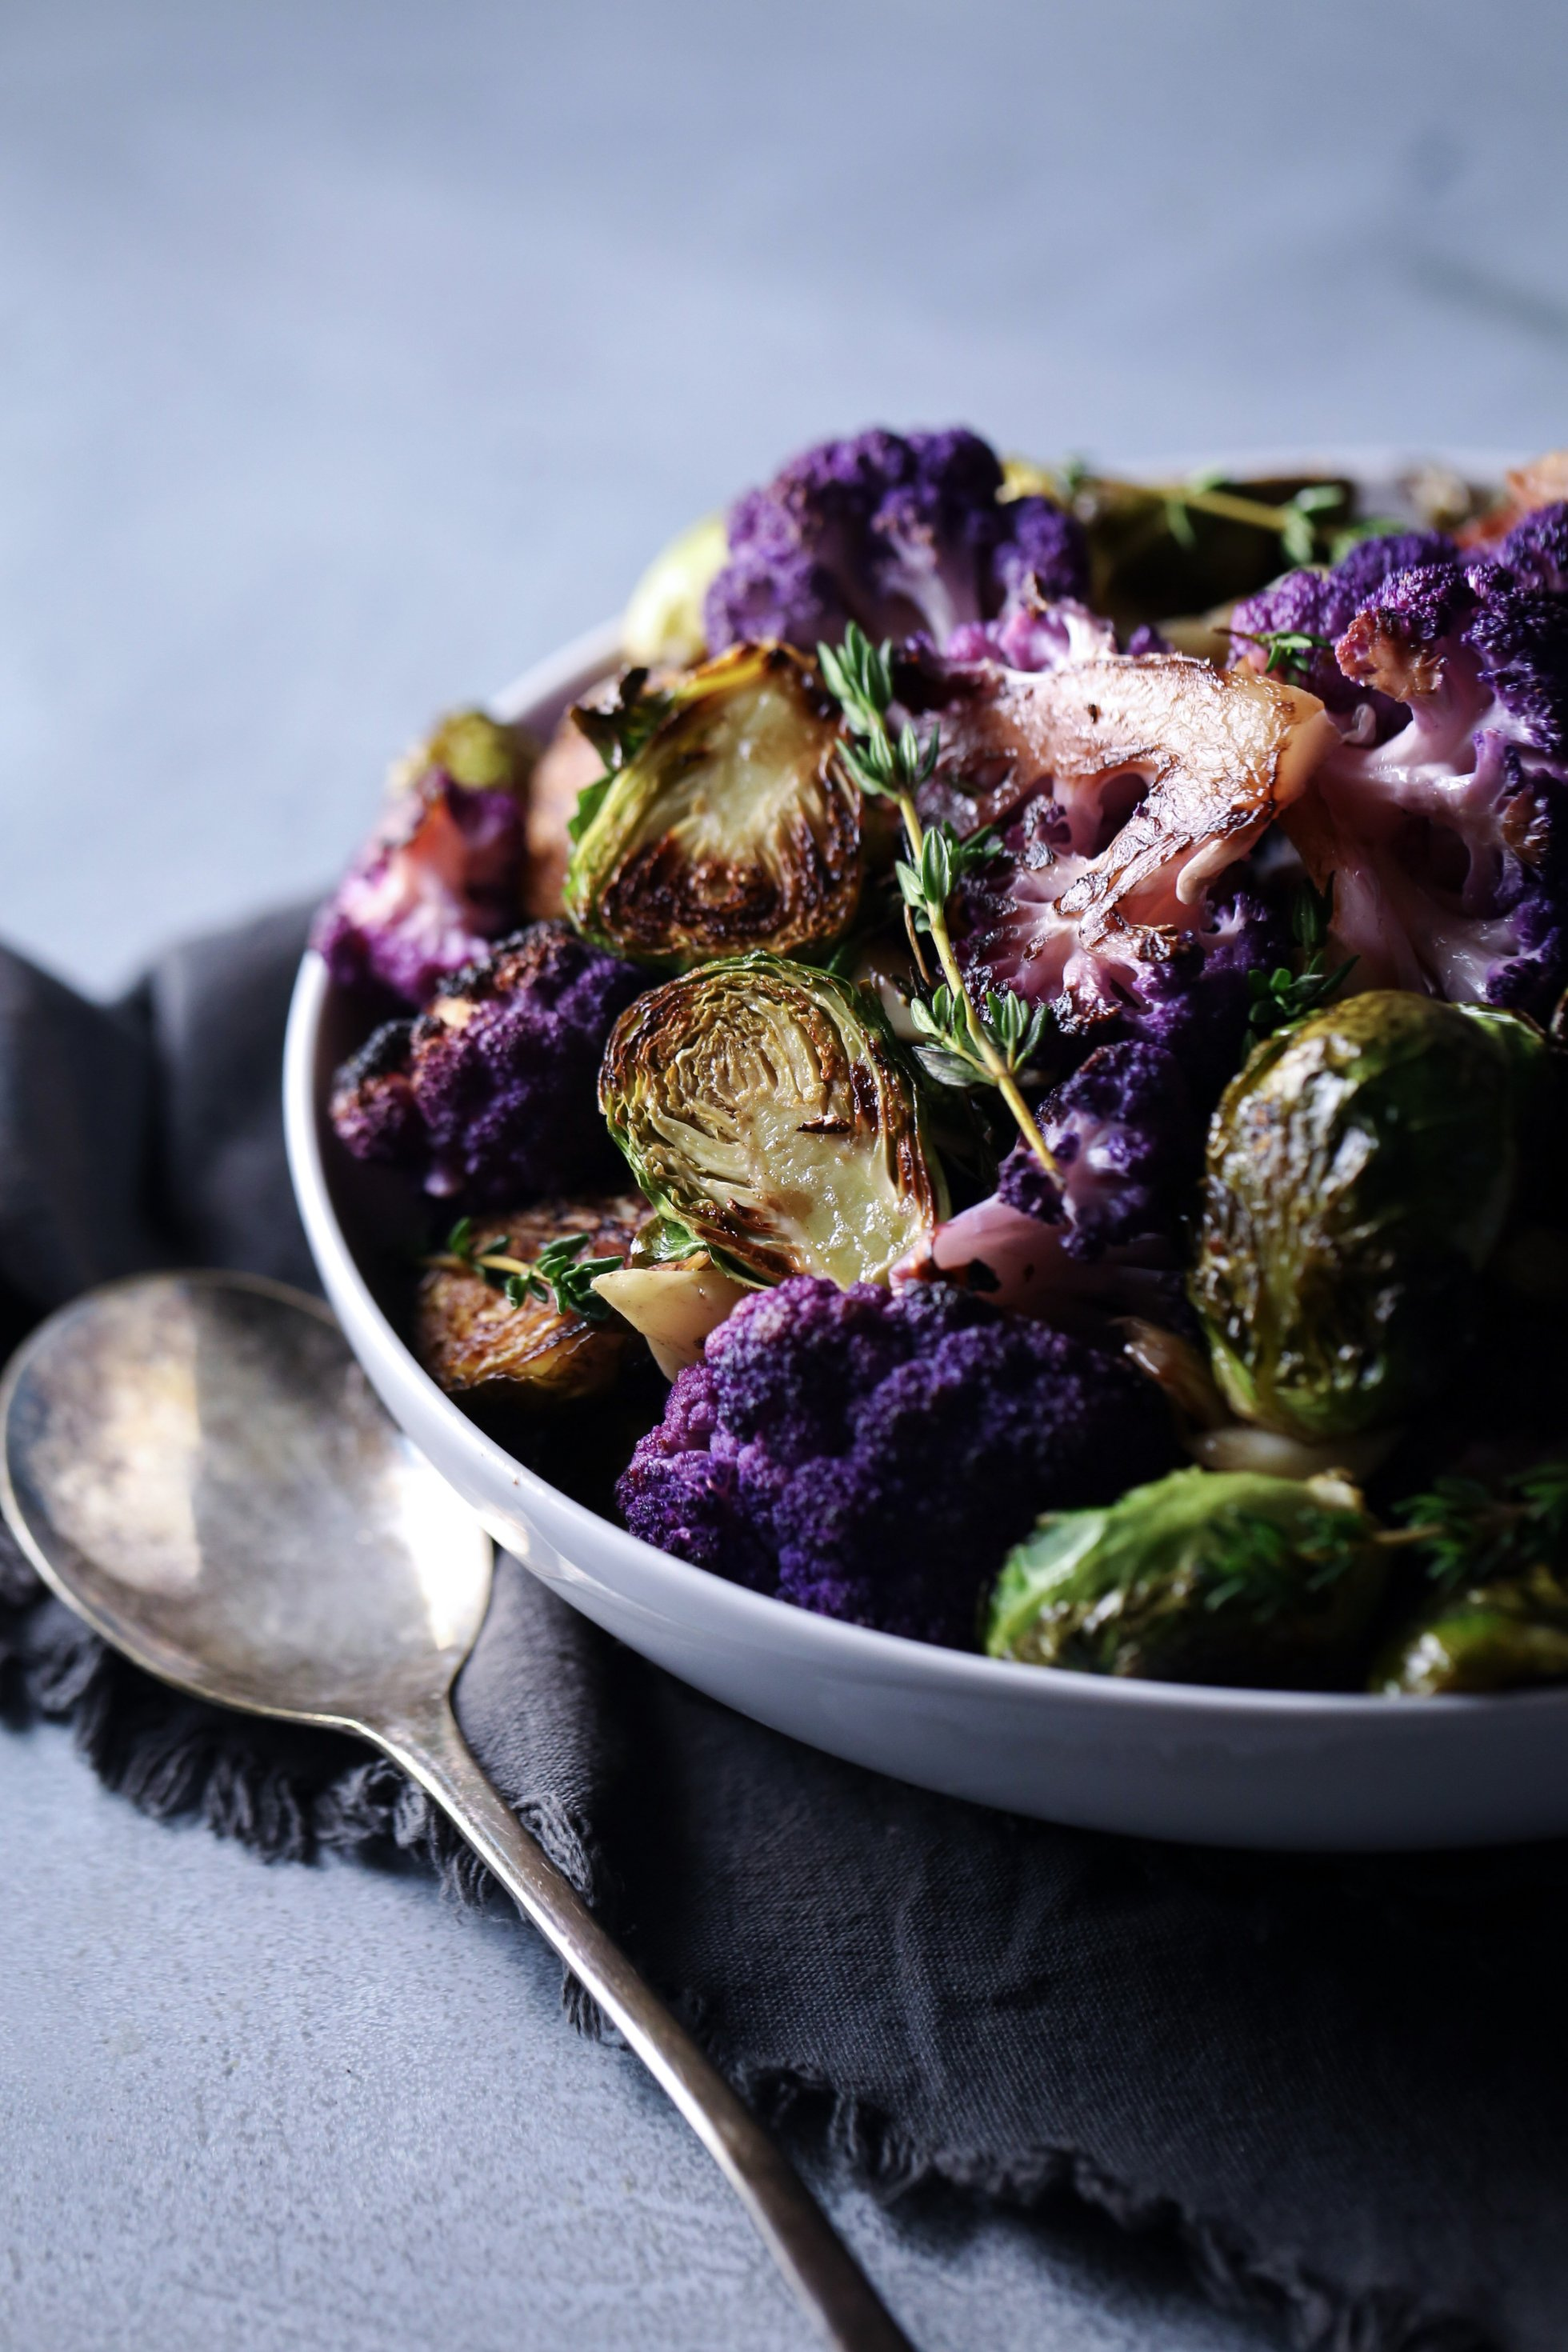 Roasted Cauliflower & Brussel Sprouts